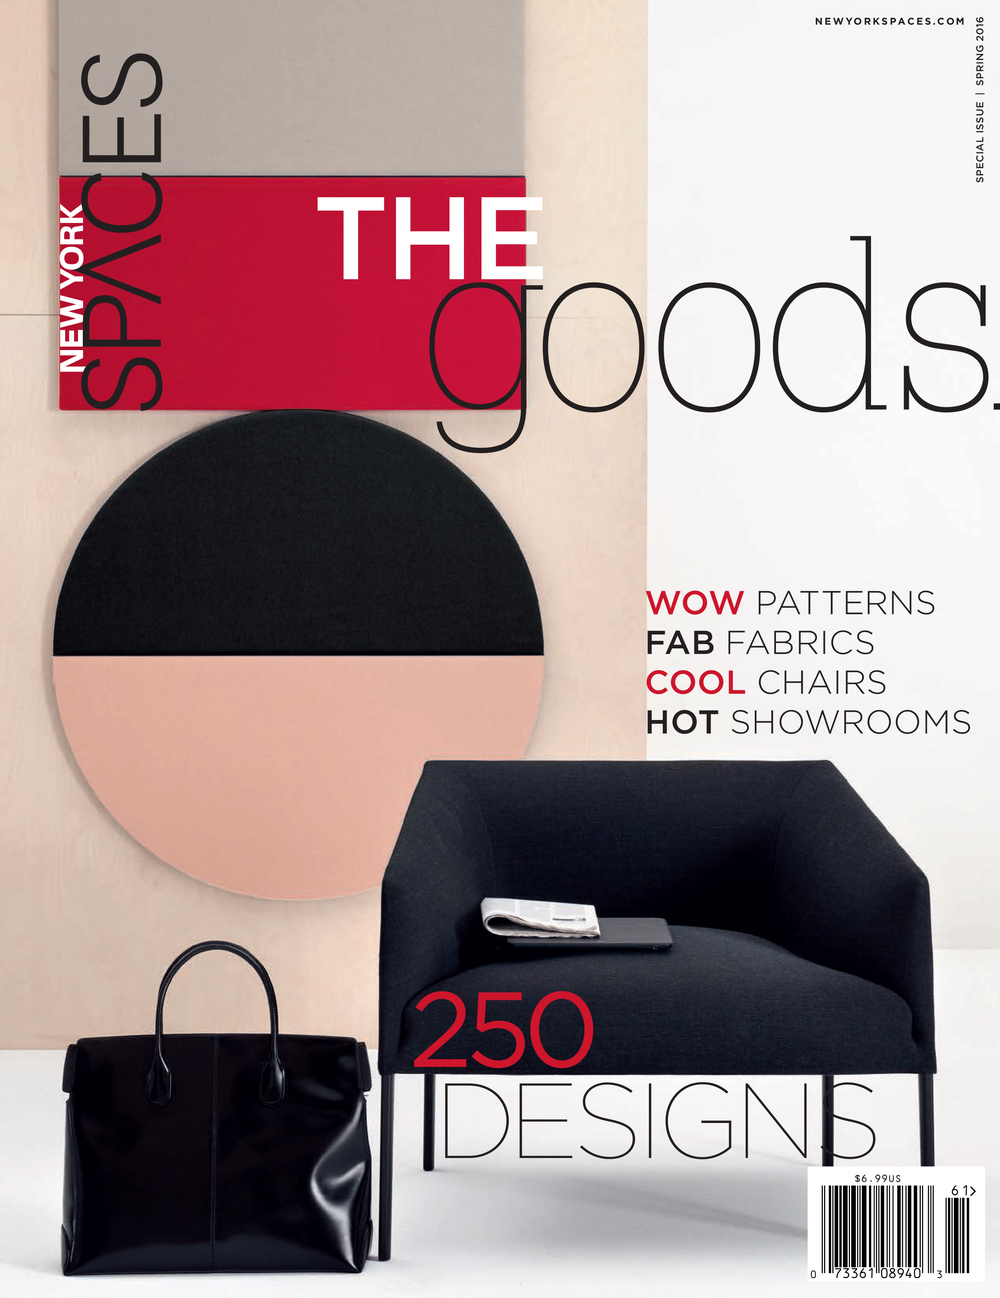 NYKS_COVER0516_goods.jpg